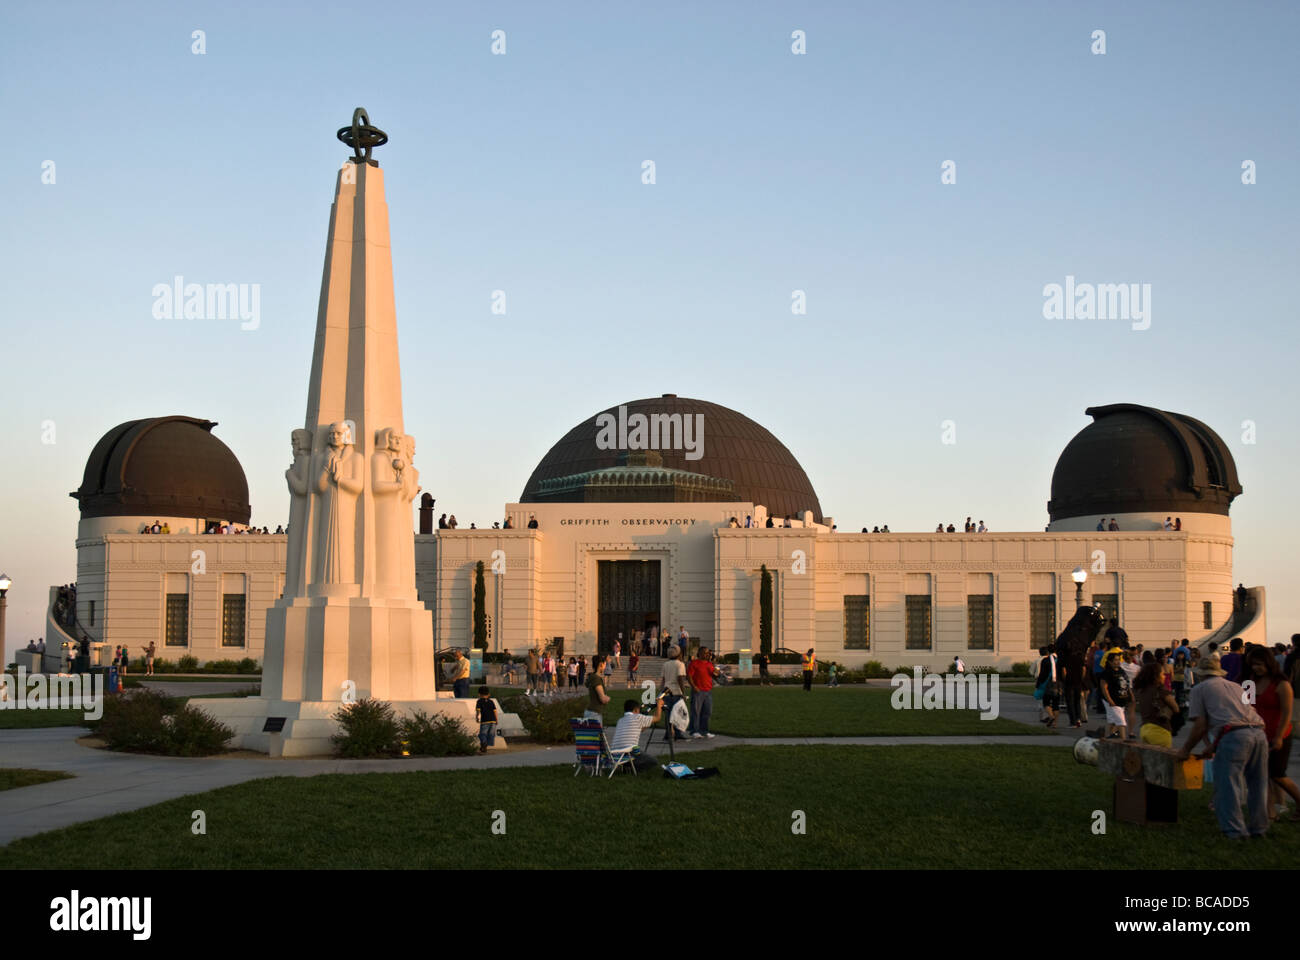 Griffith Observatory, Griffith Park, Los Angeles, California, USA - Stock Image